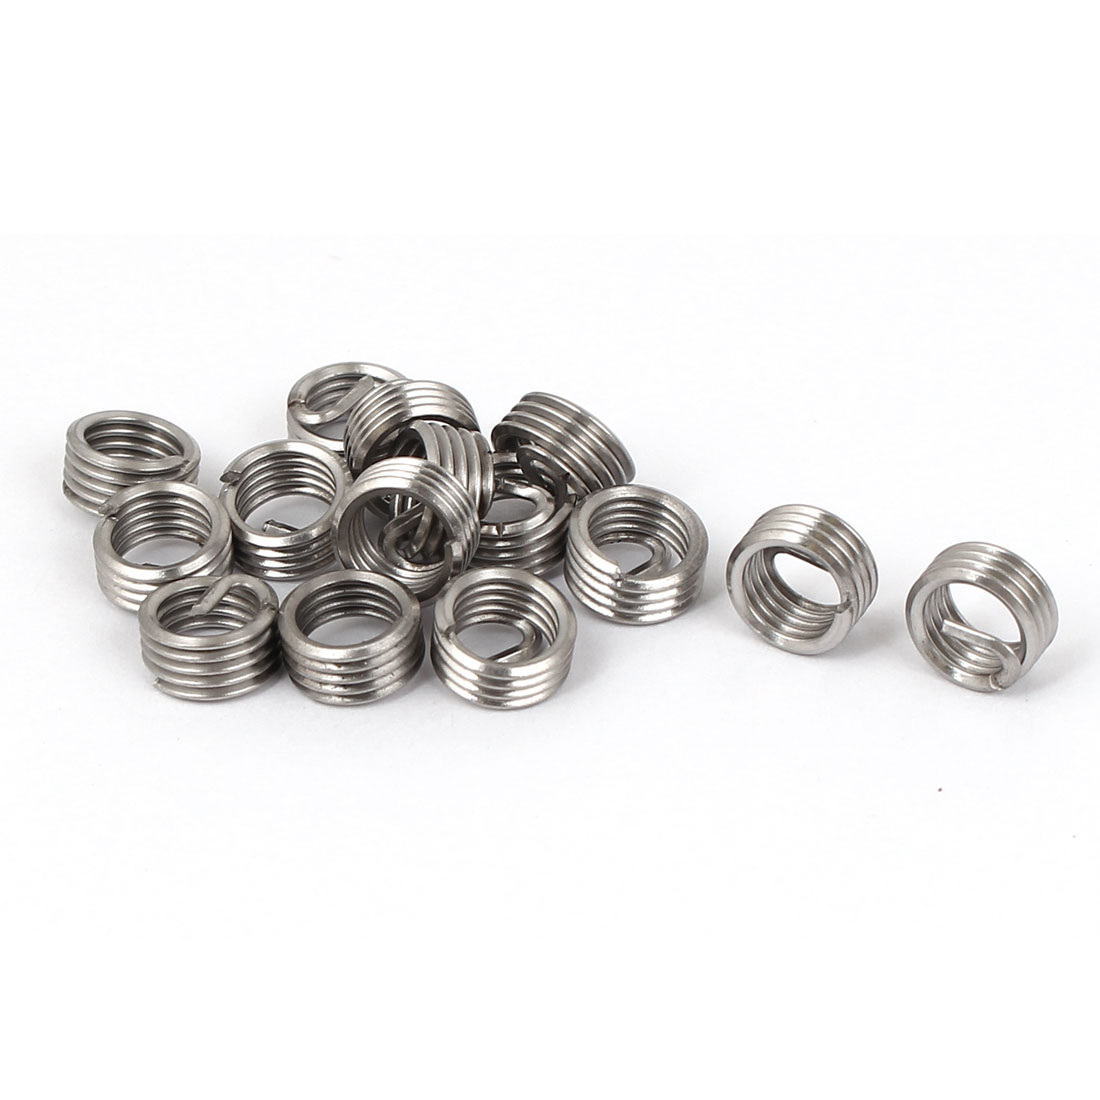 M6x1mmx1D Stainless Steel Helicoil Wire Thread Repair Inserts 15pcs